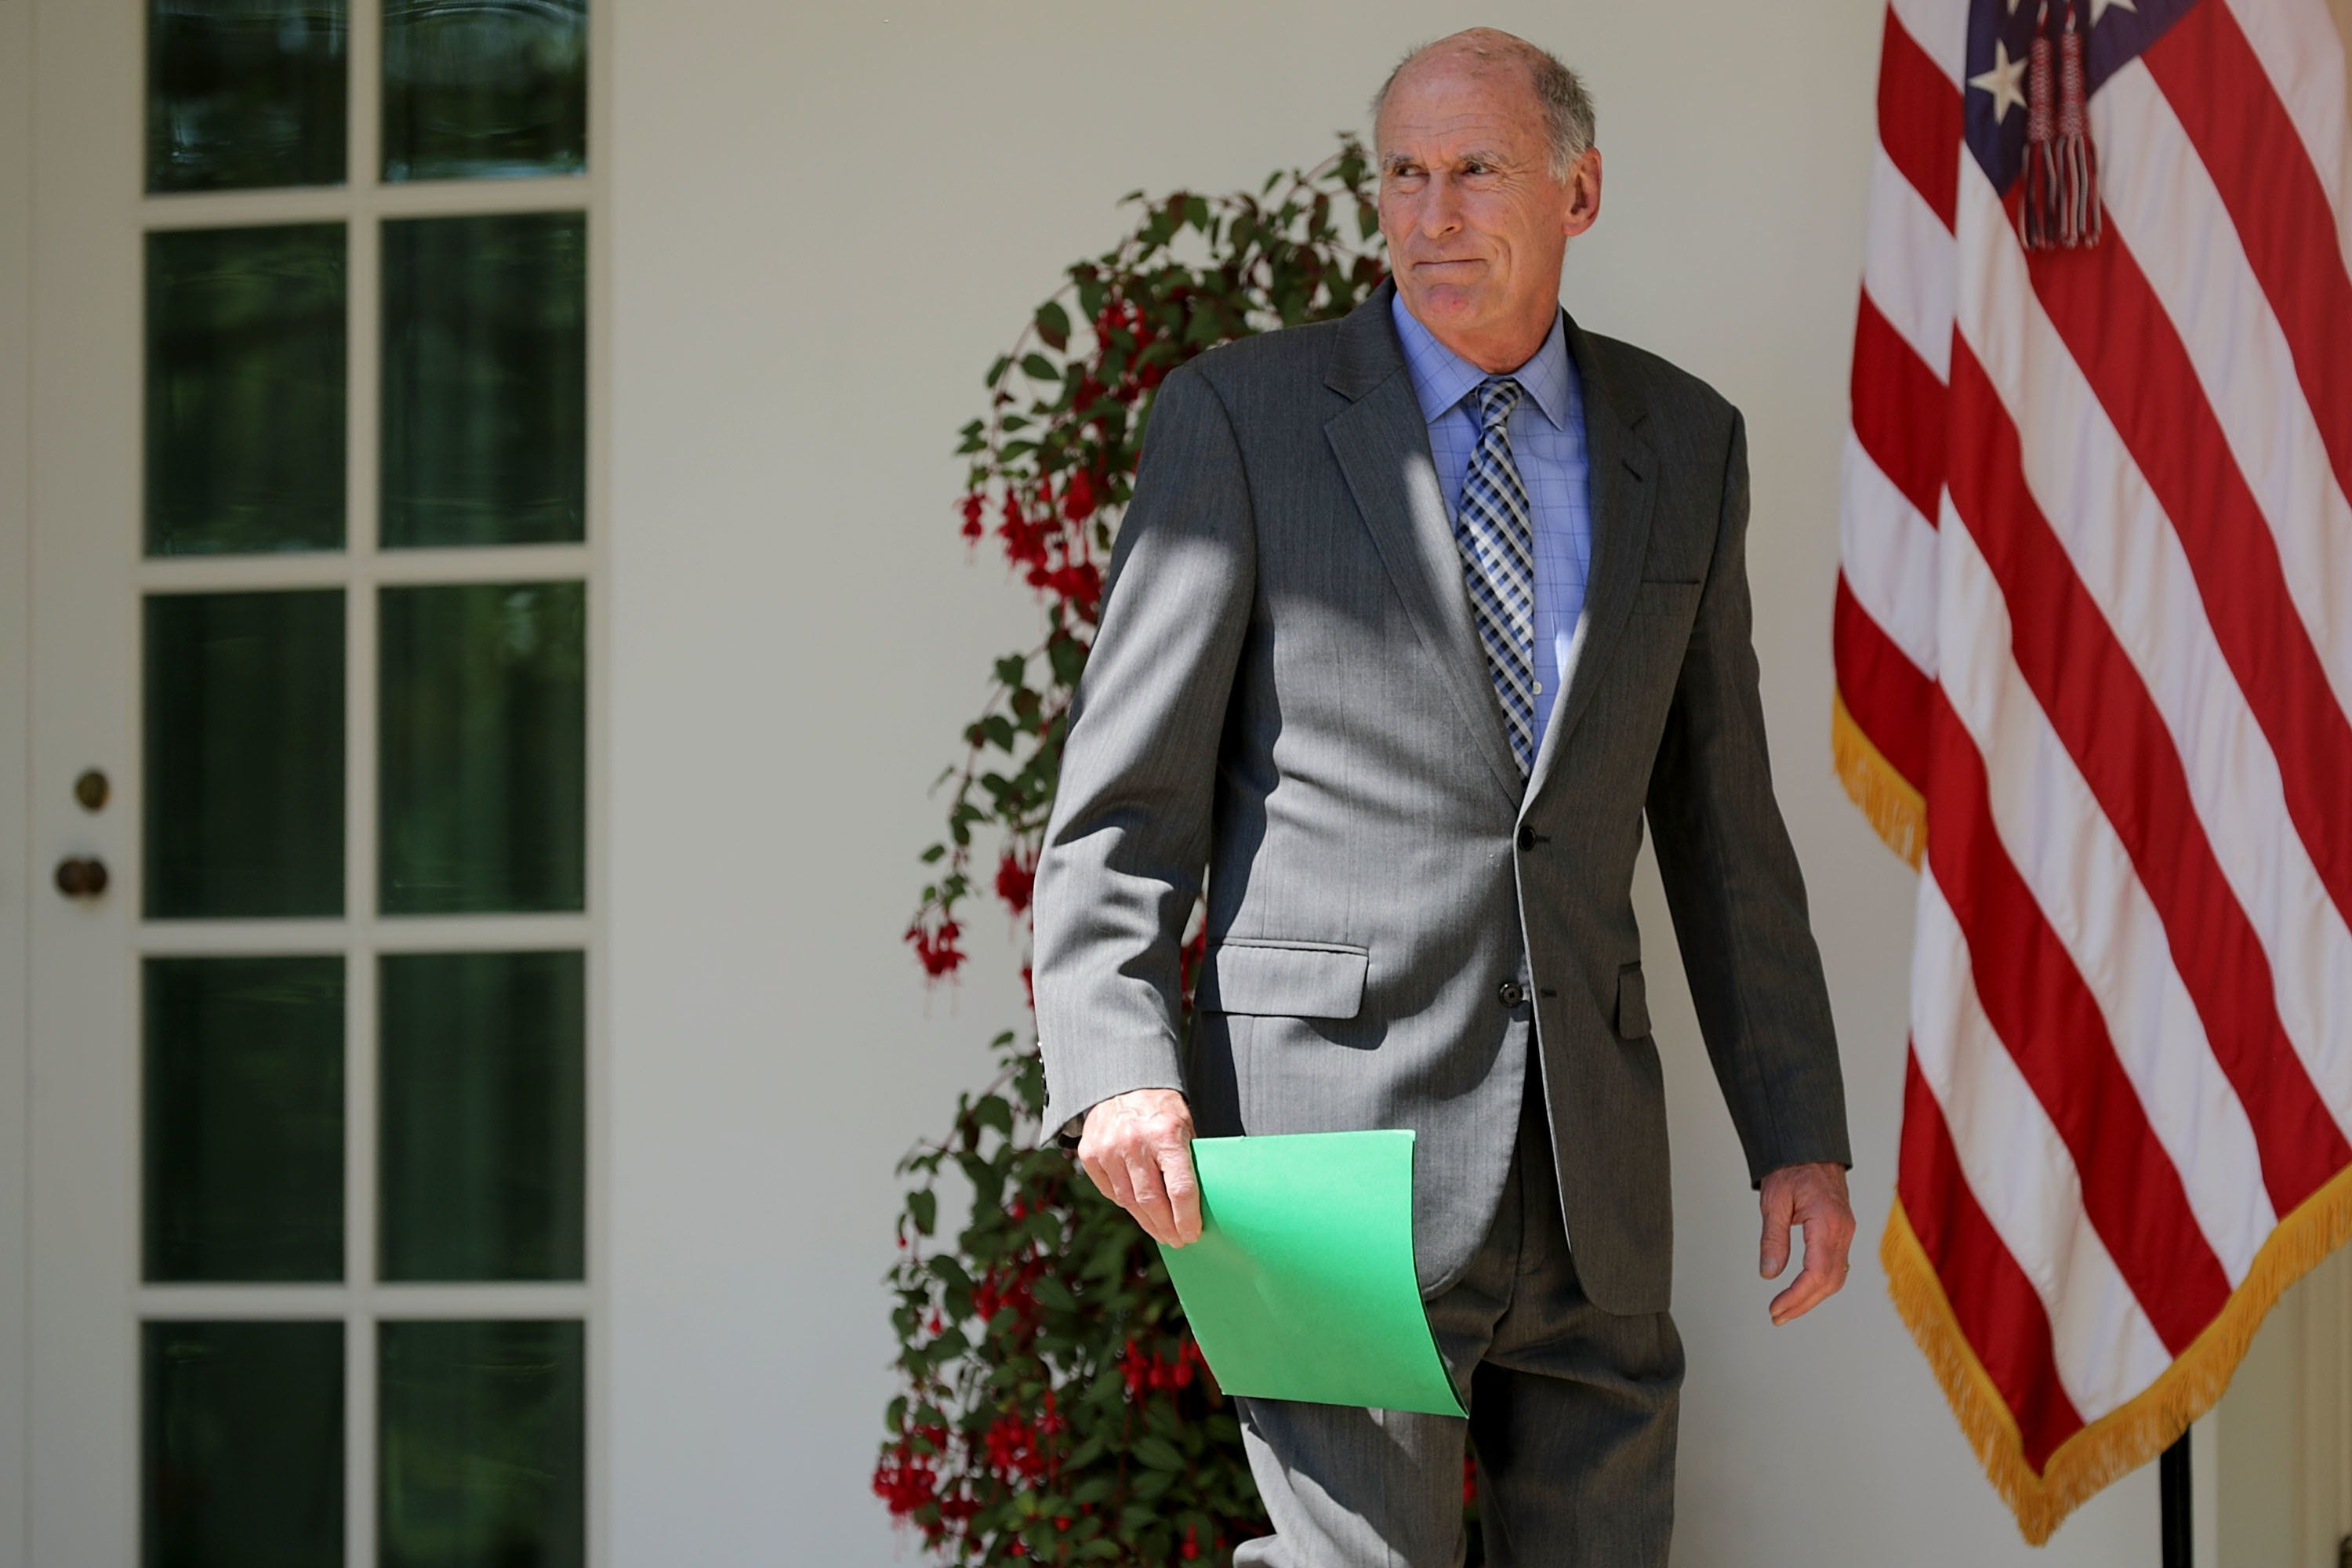 WASHINGTON, DC - MAY 03:  U.S. Director of National Intelligence Dan Coats walks along the Rose Garden Colonnade before an event to mark the National Day of Prayer at the White House May 3, 2018 in Washington, DC. The White House invited leaders from varios faiths and religions to participate in the day of prayer, which was designated in 1952 by the United States Congress to ask people 'to turn to God in prayer and meditation.'  (Photo by Chip Somodevilla/Getty Images)